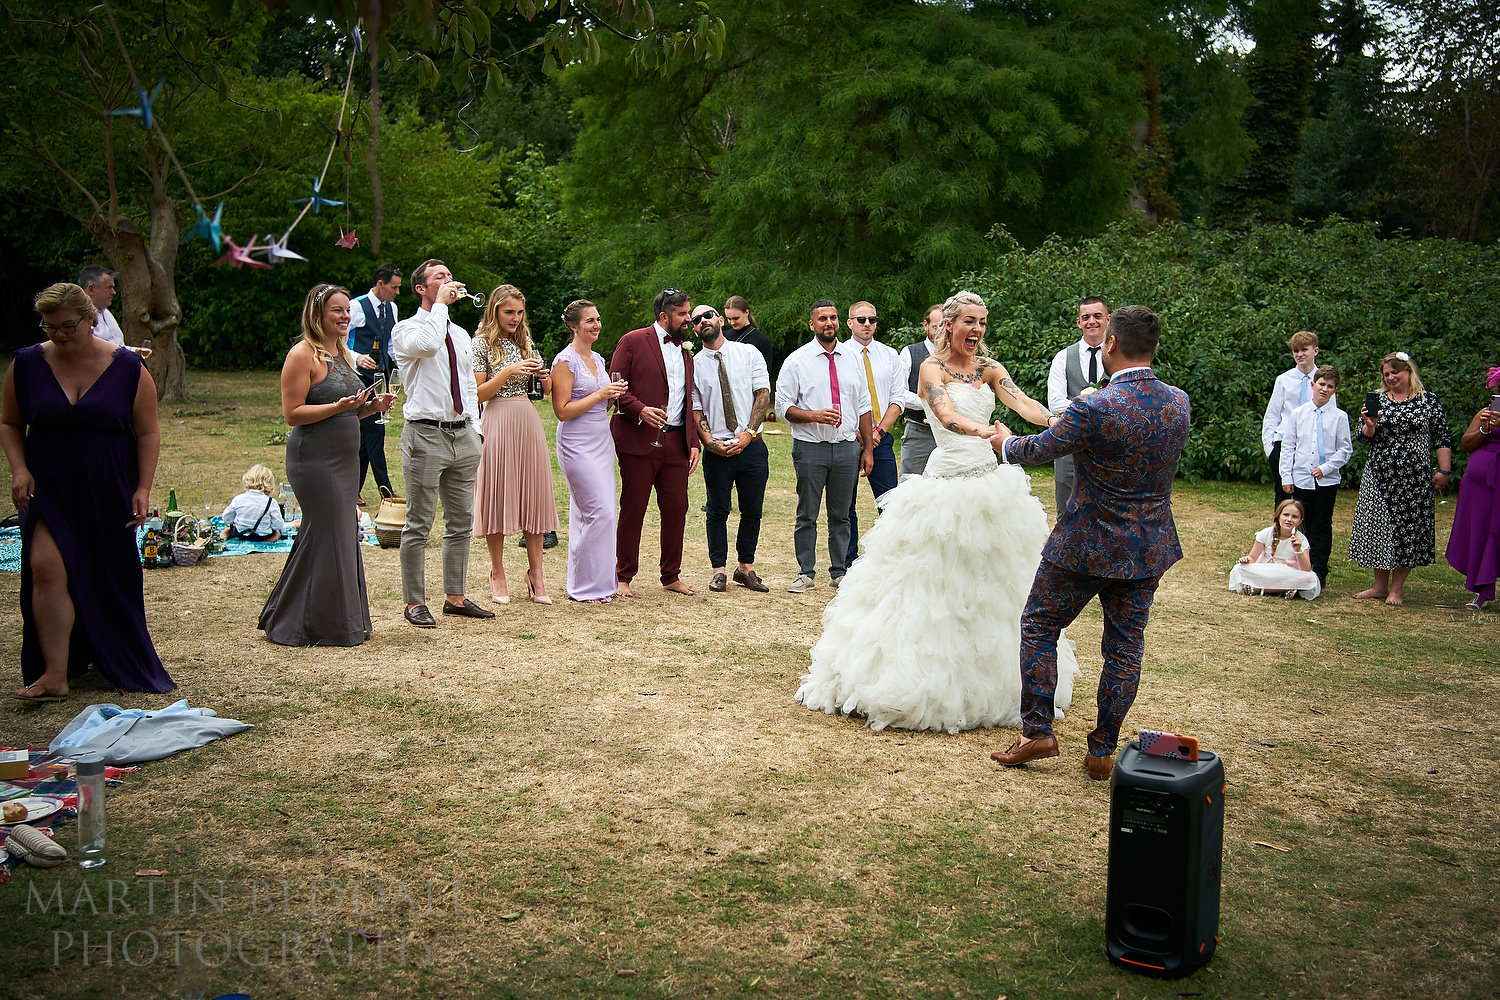 First dance in the open air